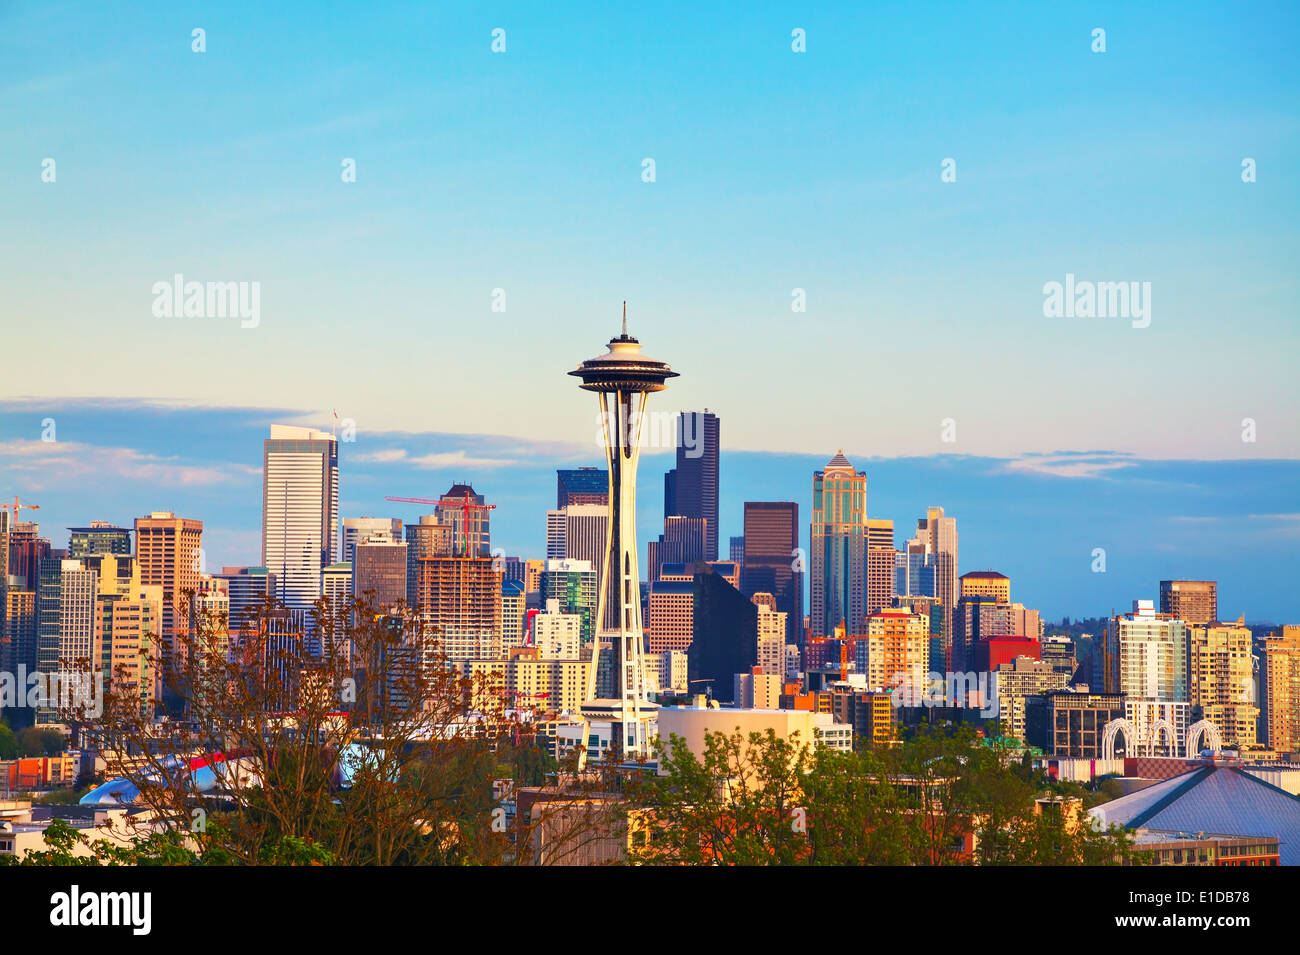 Downtown Seattle as seen from the Kerry park in the evening - Stock Image